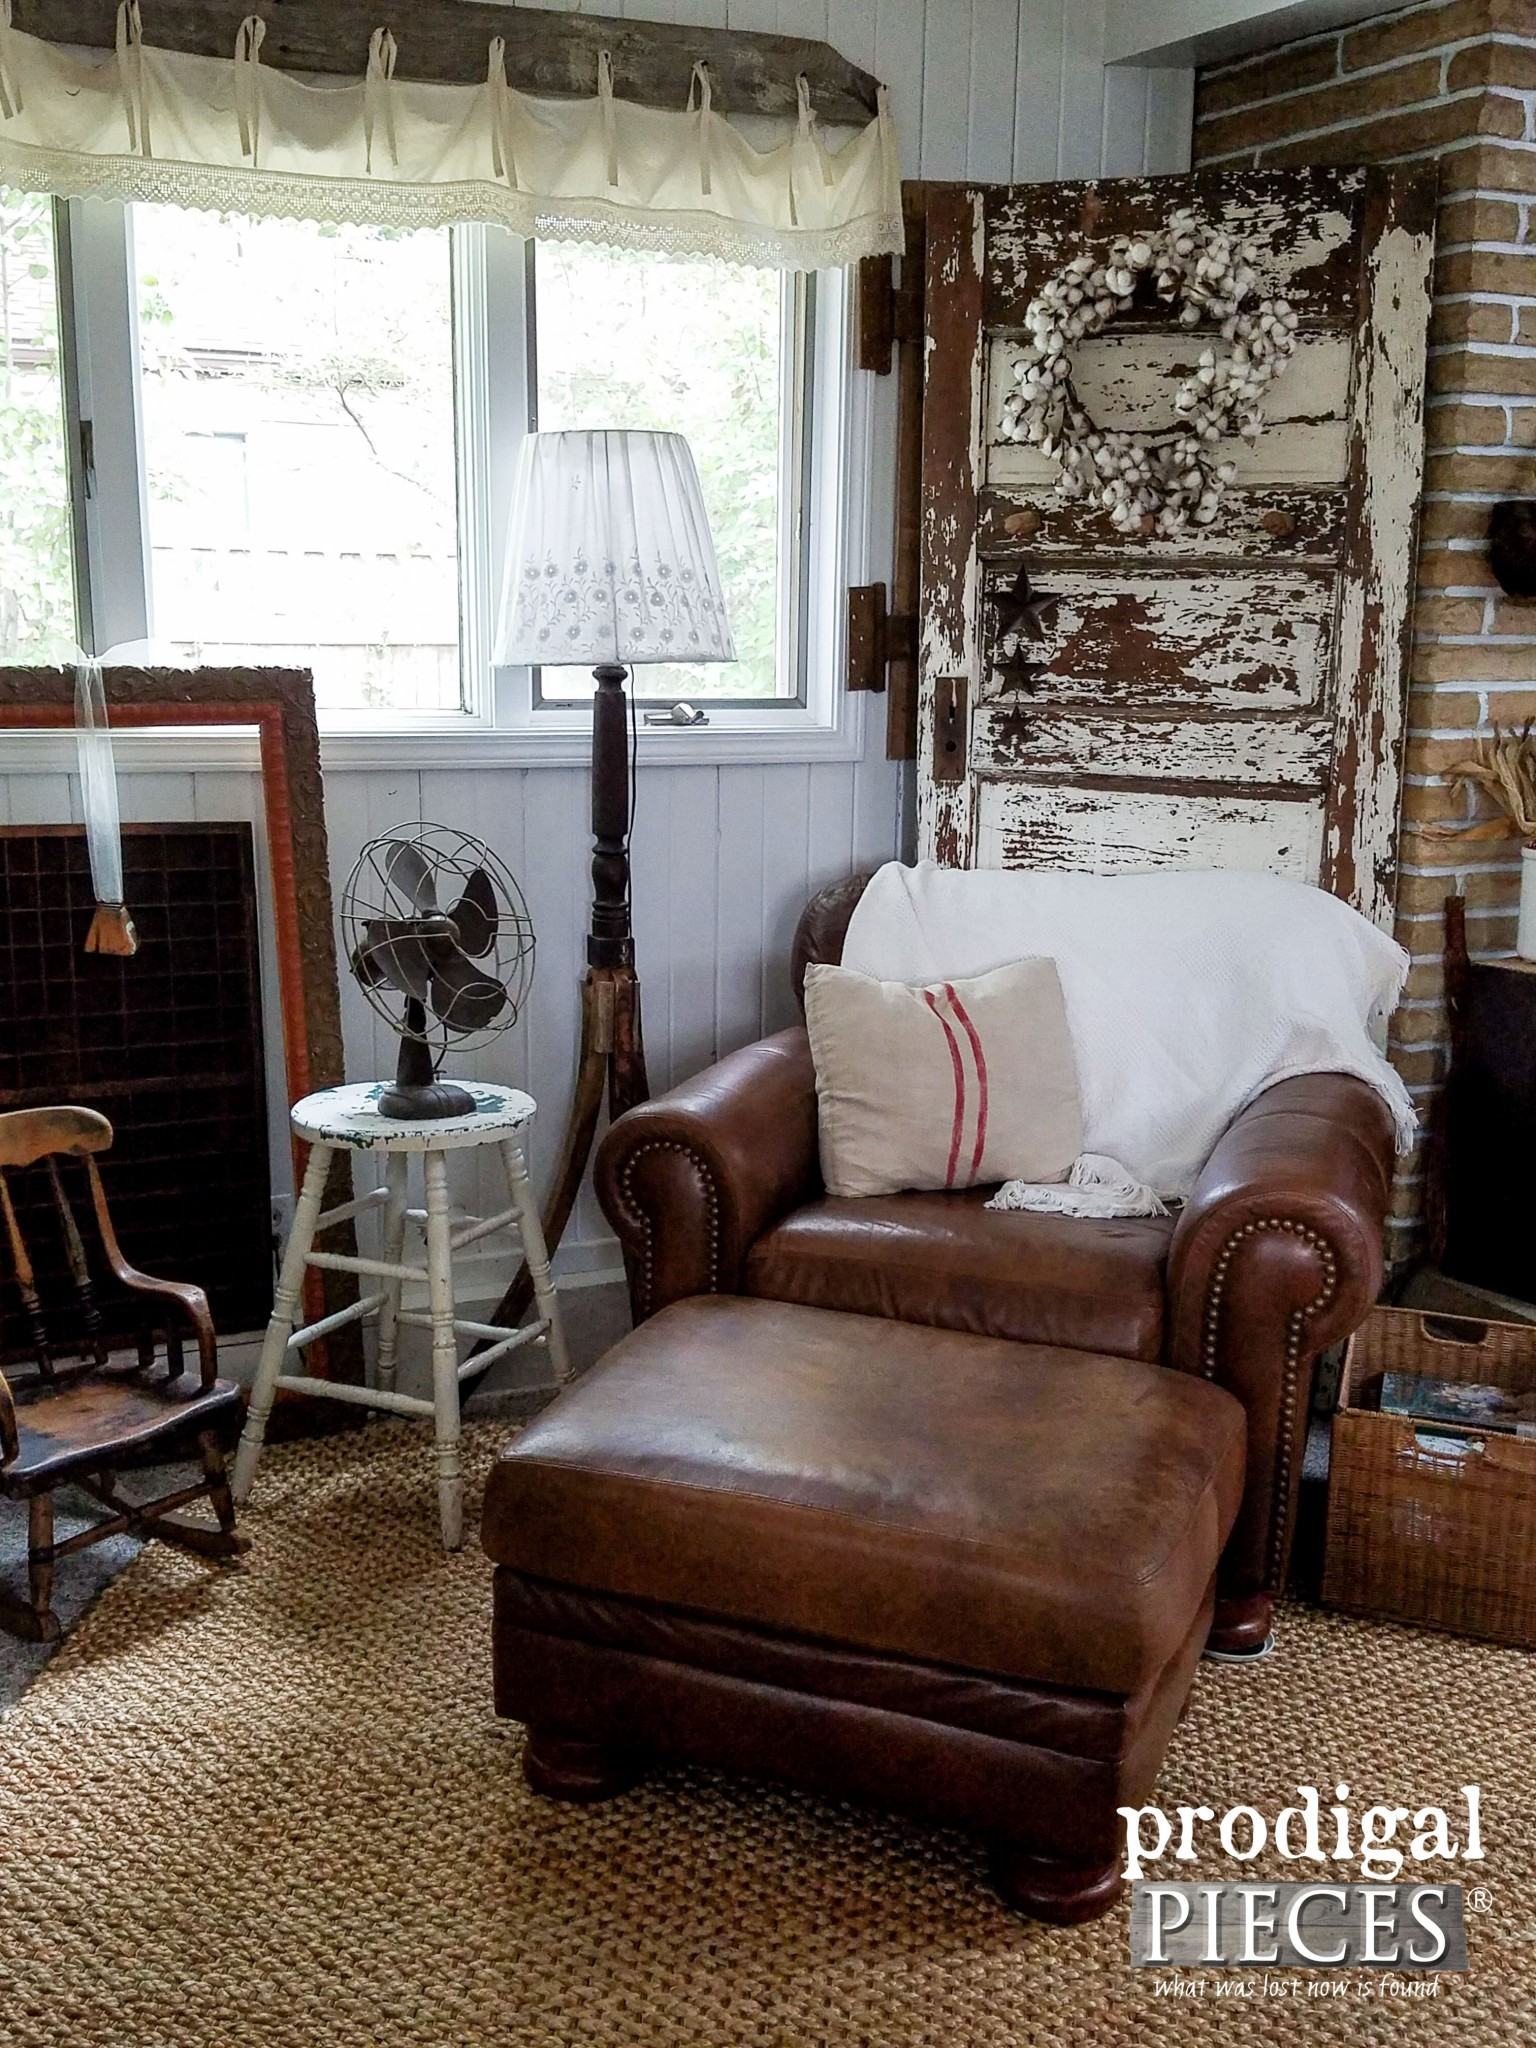 Leather Chair and Ottoman in Eclectic Farmhouse Style Family Room | Prodigal Pieces | www.prodigalpieces.com